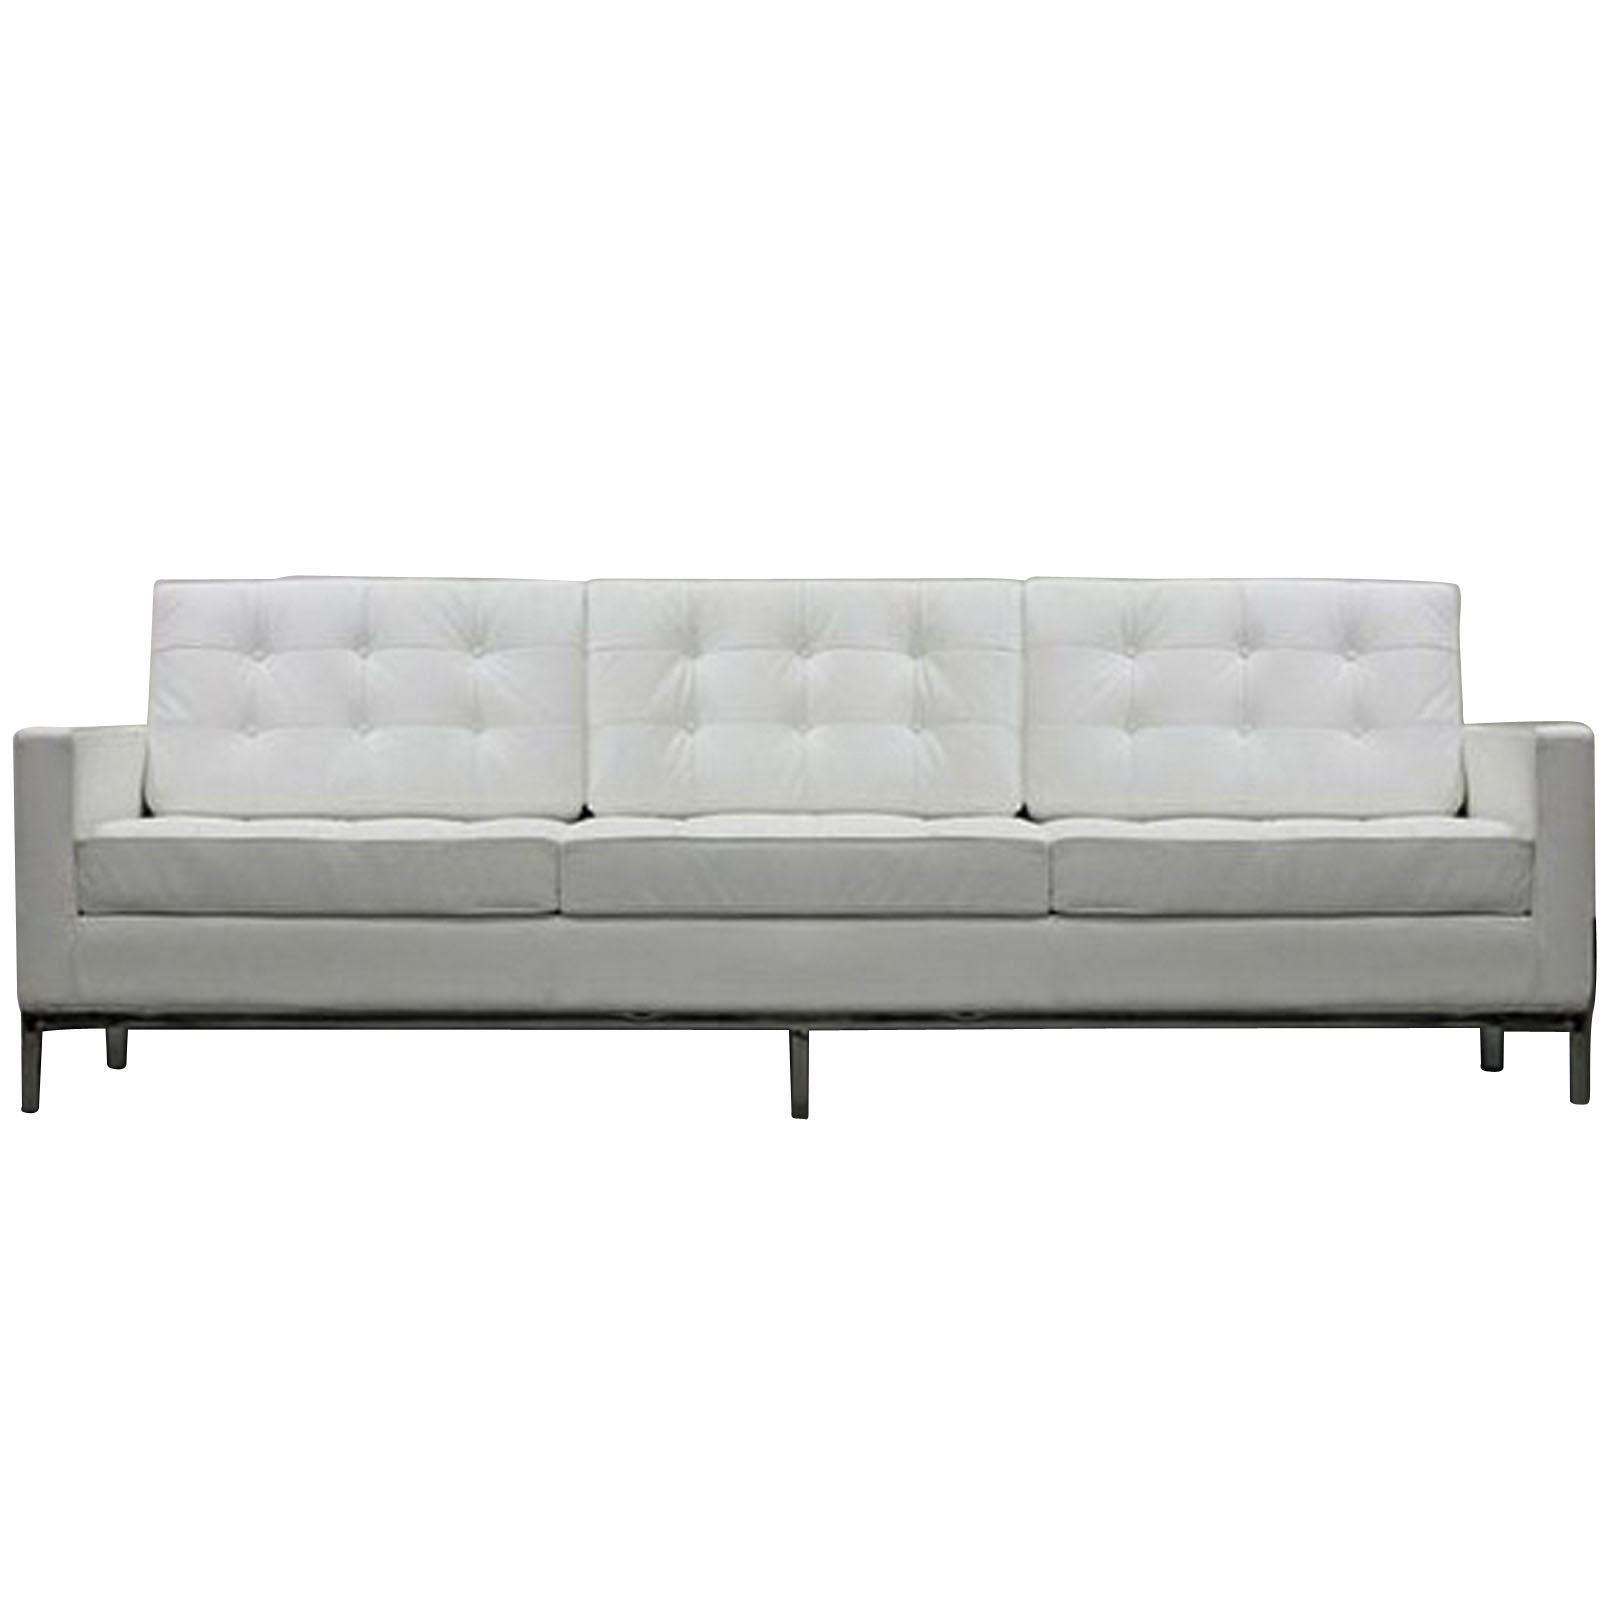 Latest Florence Knoll Style Sofa Couch – Leather In Florence Knoll Style Sofas (View 4 of 20)